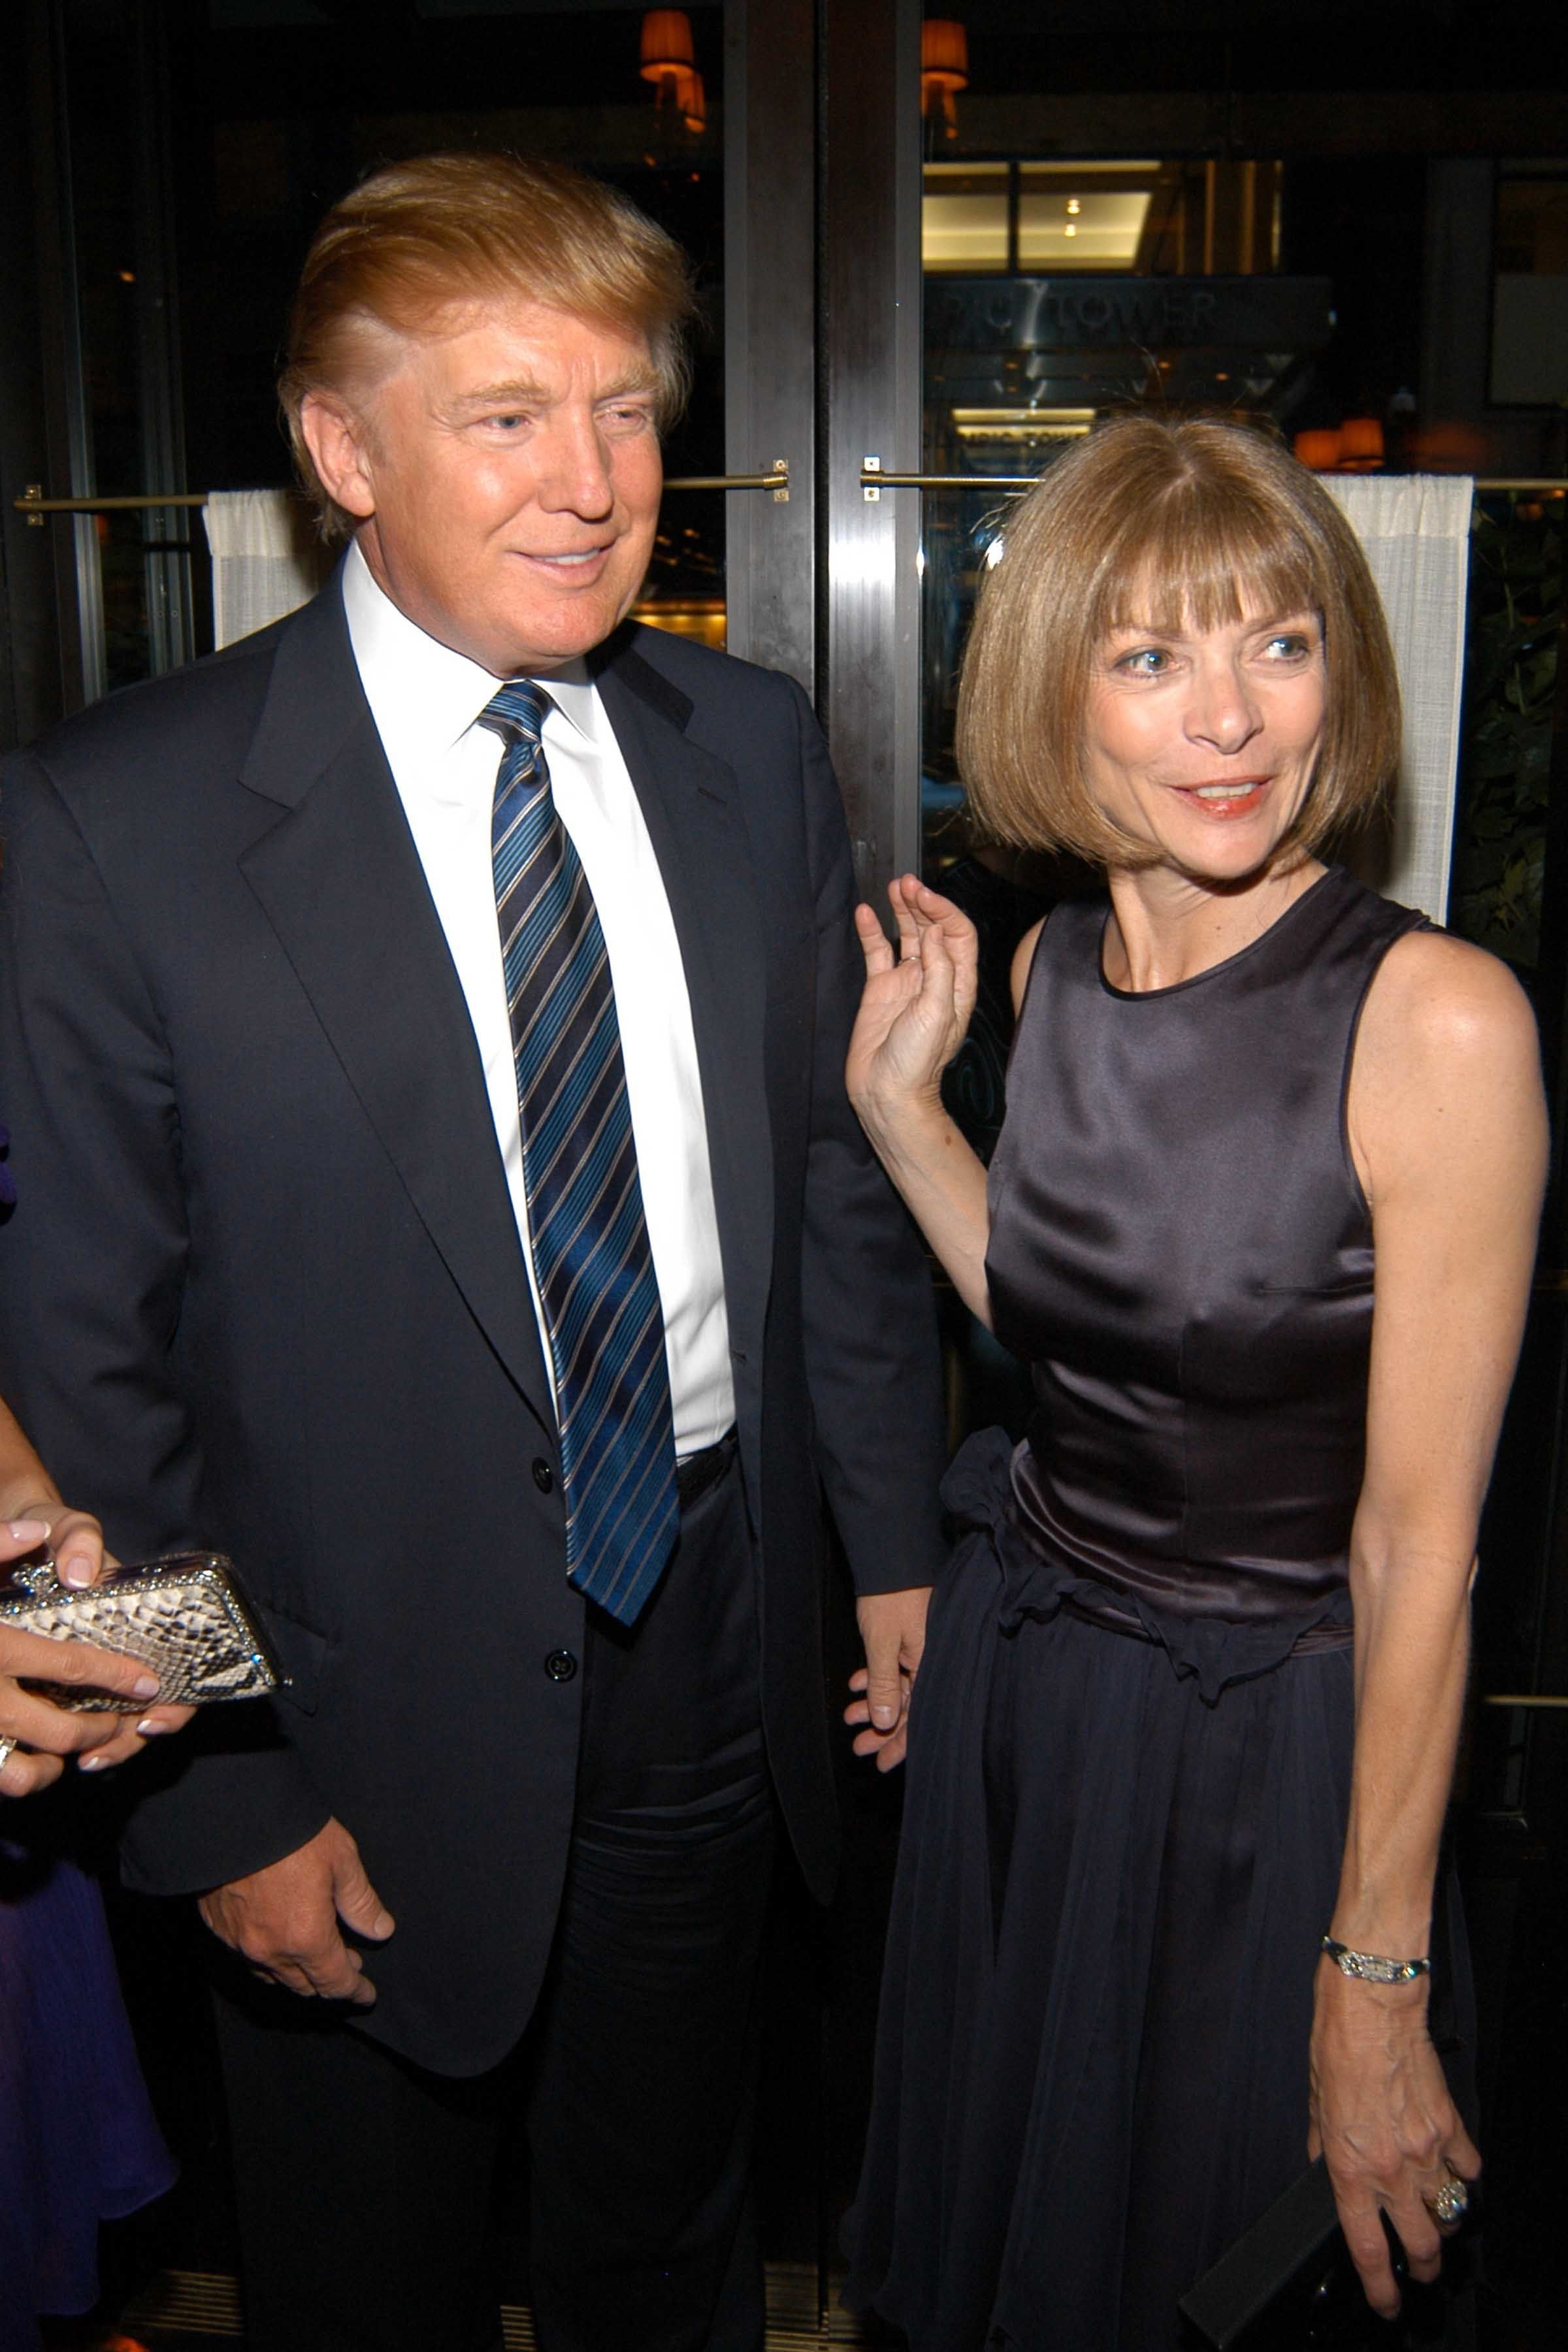 NEW YORK, NY - JUNE 7: Donald Trump and Anna Wintour attend MAC Cosmetics Hosts Launch Party for Andre Leon Talley's Book, ALT 365 at LaGrenouille on June 7, 2005 in NYC. (Photo by Neil Rasmus/Patrick McMullan via Getty Images)